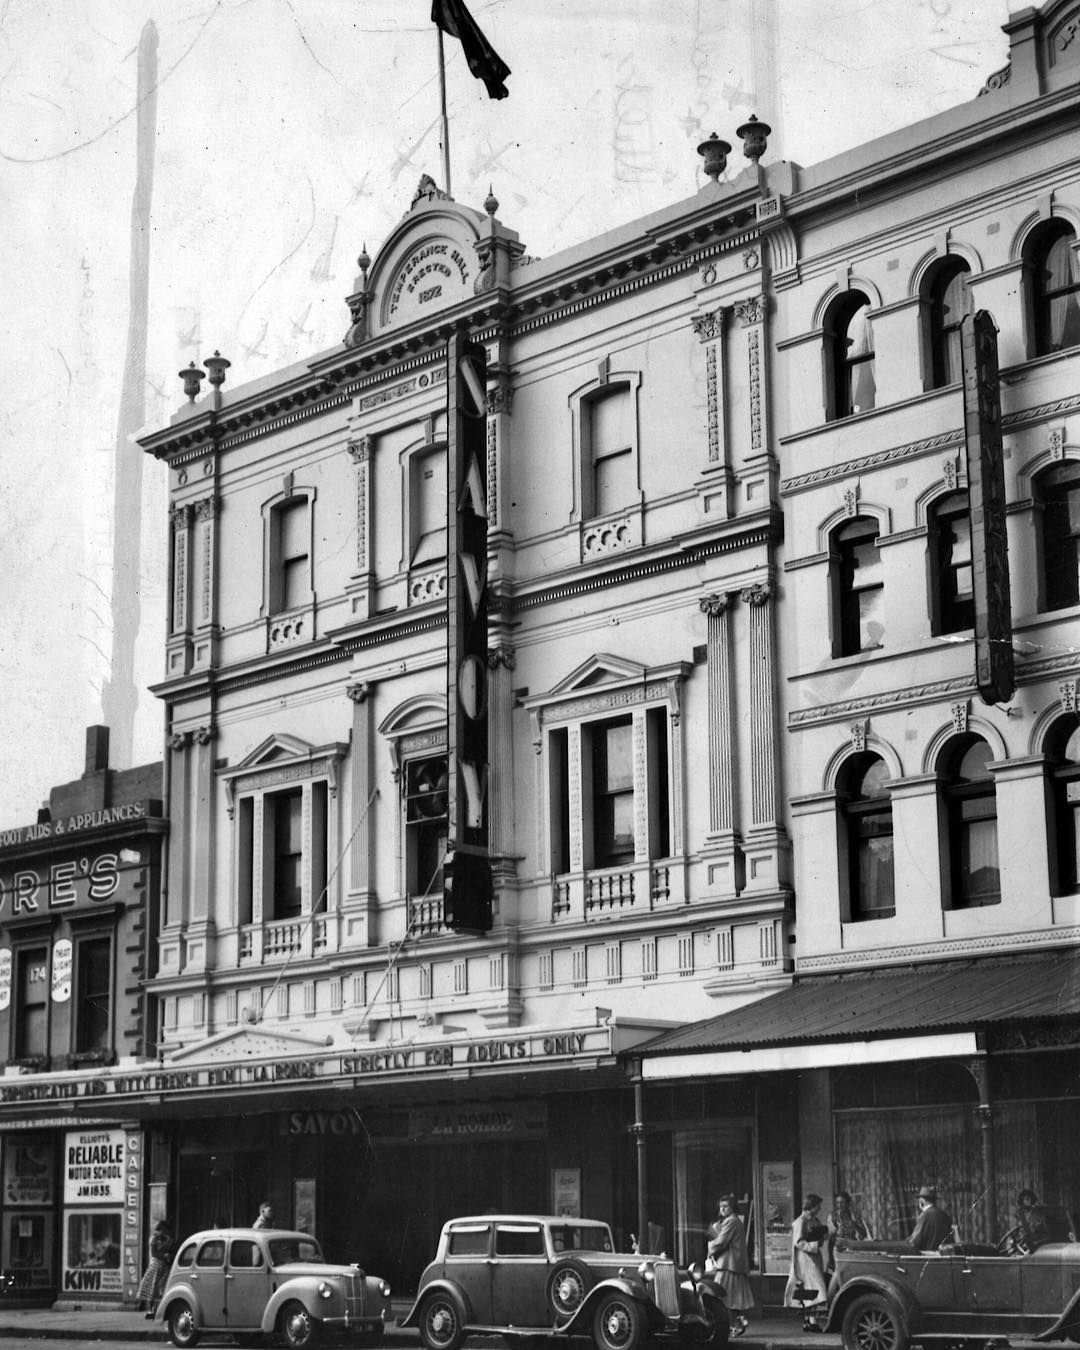 1952. The Savoy Theatre, At 172 Russell St, A Cinema